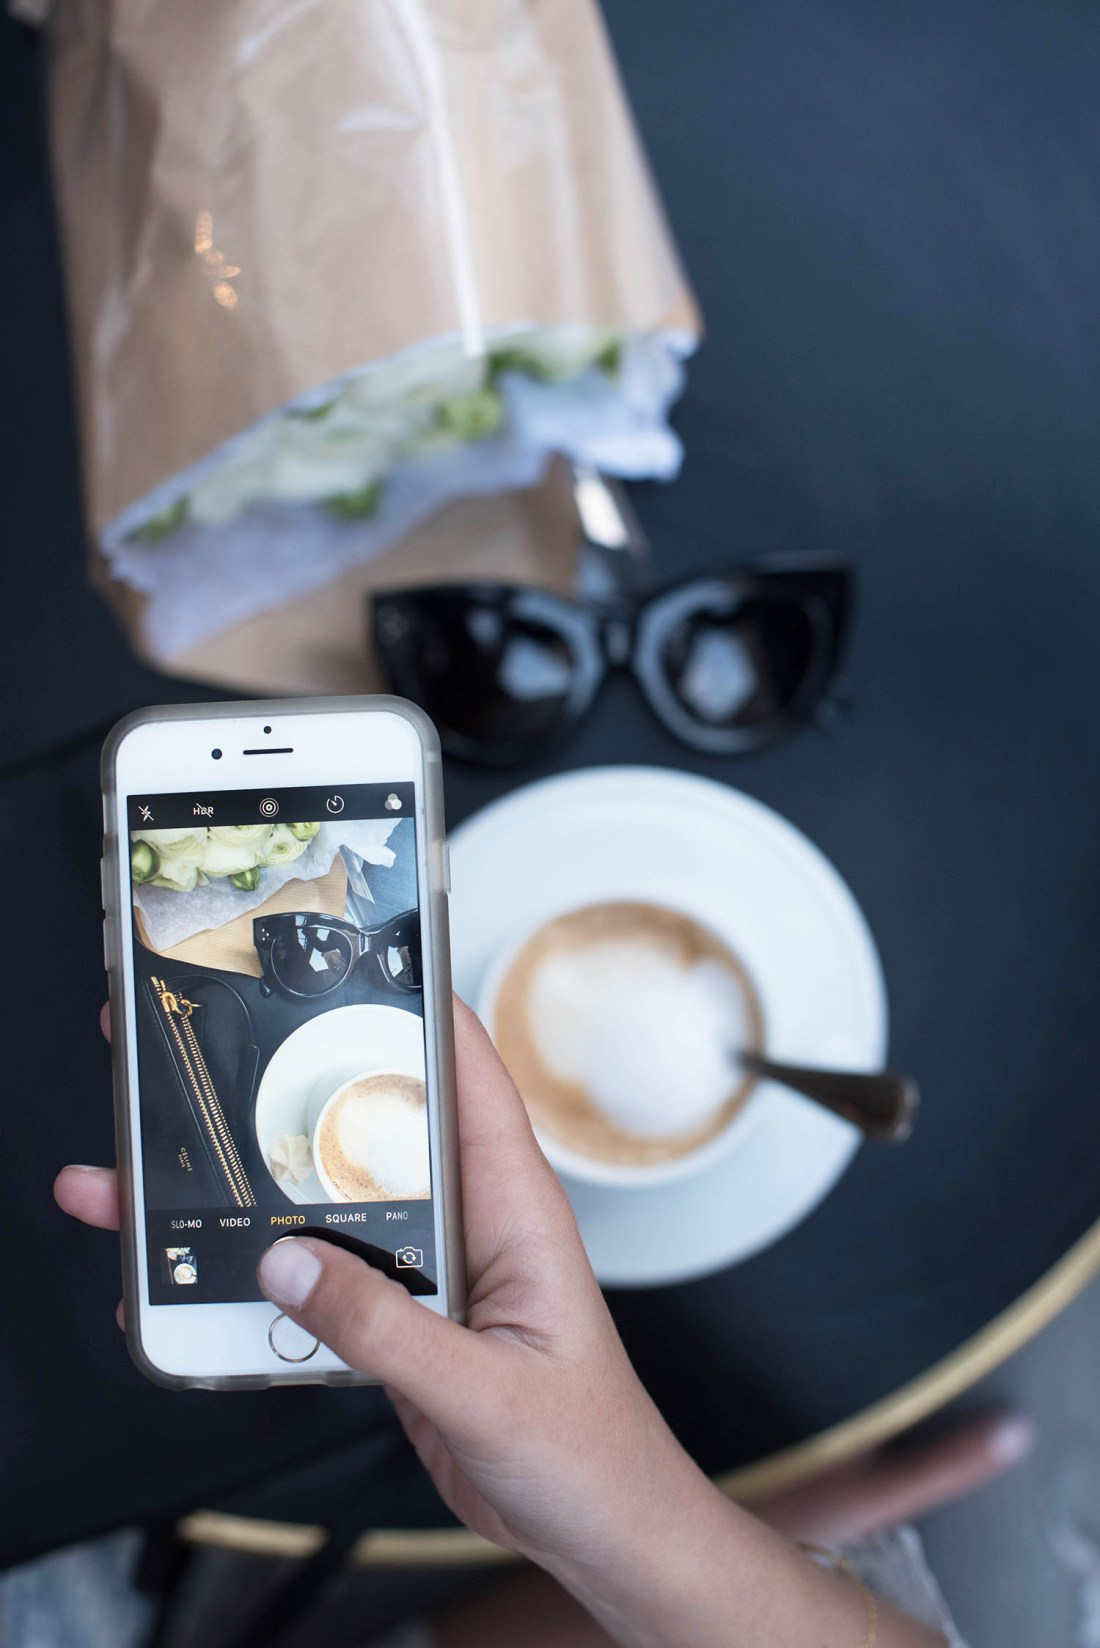 Fashion blogger Cee Fardoe of Coco & Vera captures a photo of her morning coffee at Maison Marie in Paris with her iPhone 6s